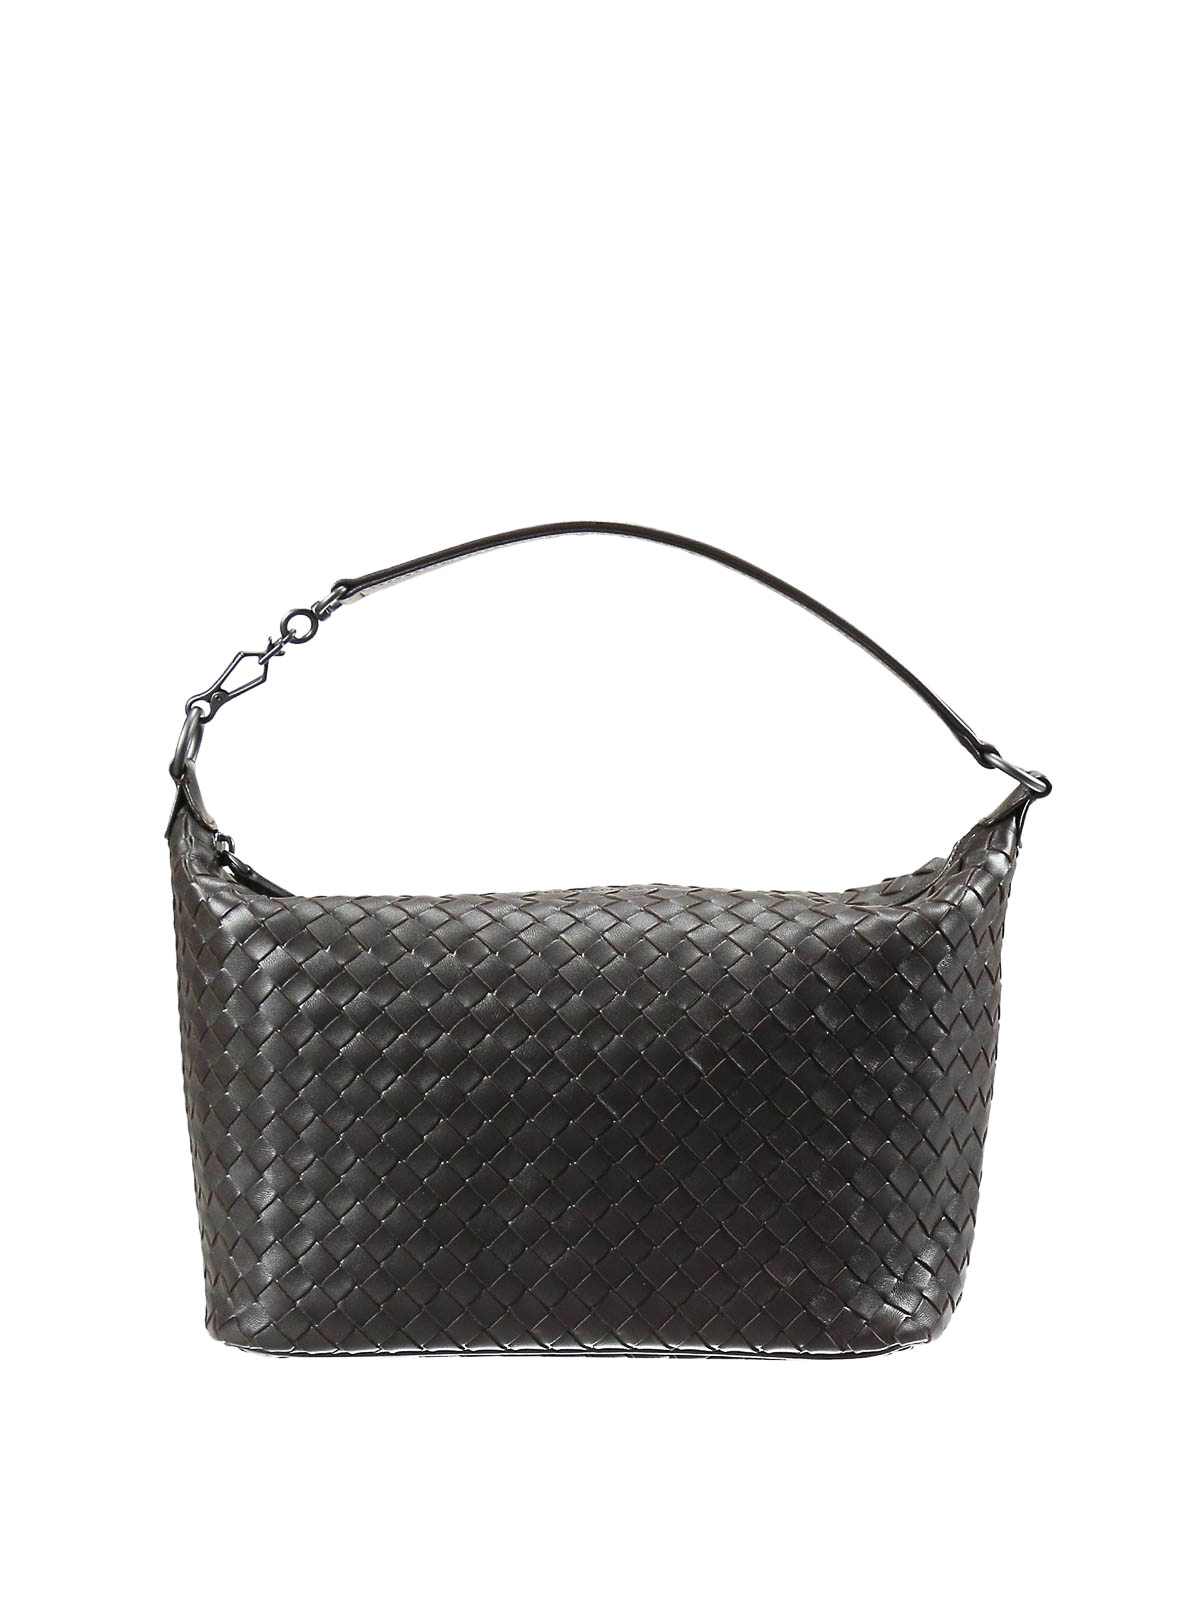 07b0de64d5 Bottega Veneta - Intrecciato nappa small bag - shoulder bags ...